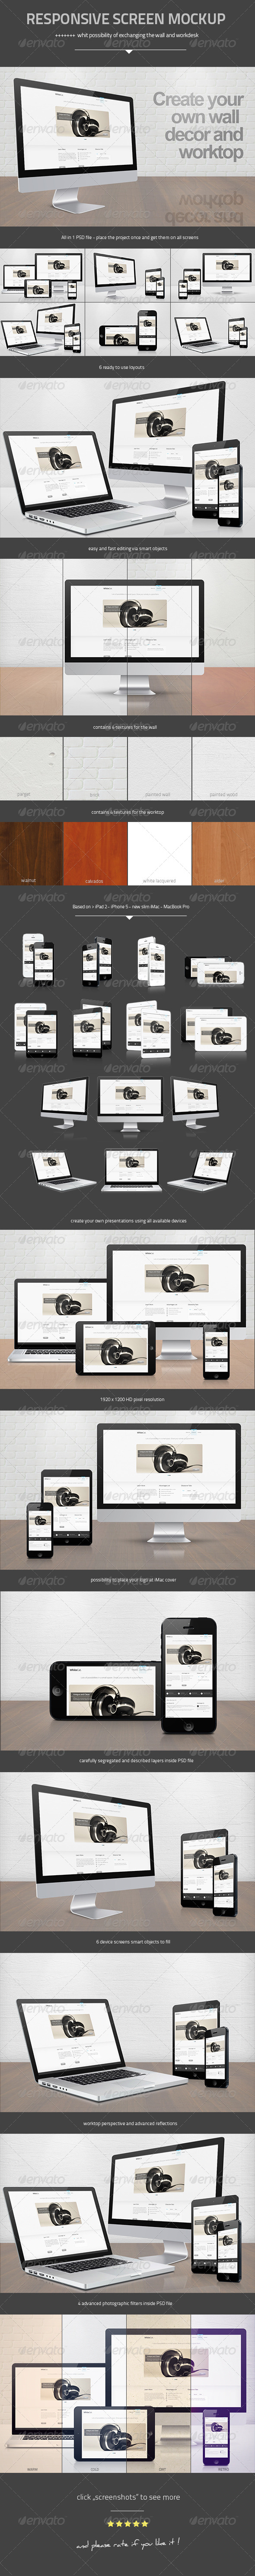 GraphicRiver Responsive Screen Mock-up 4529764